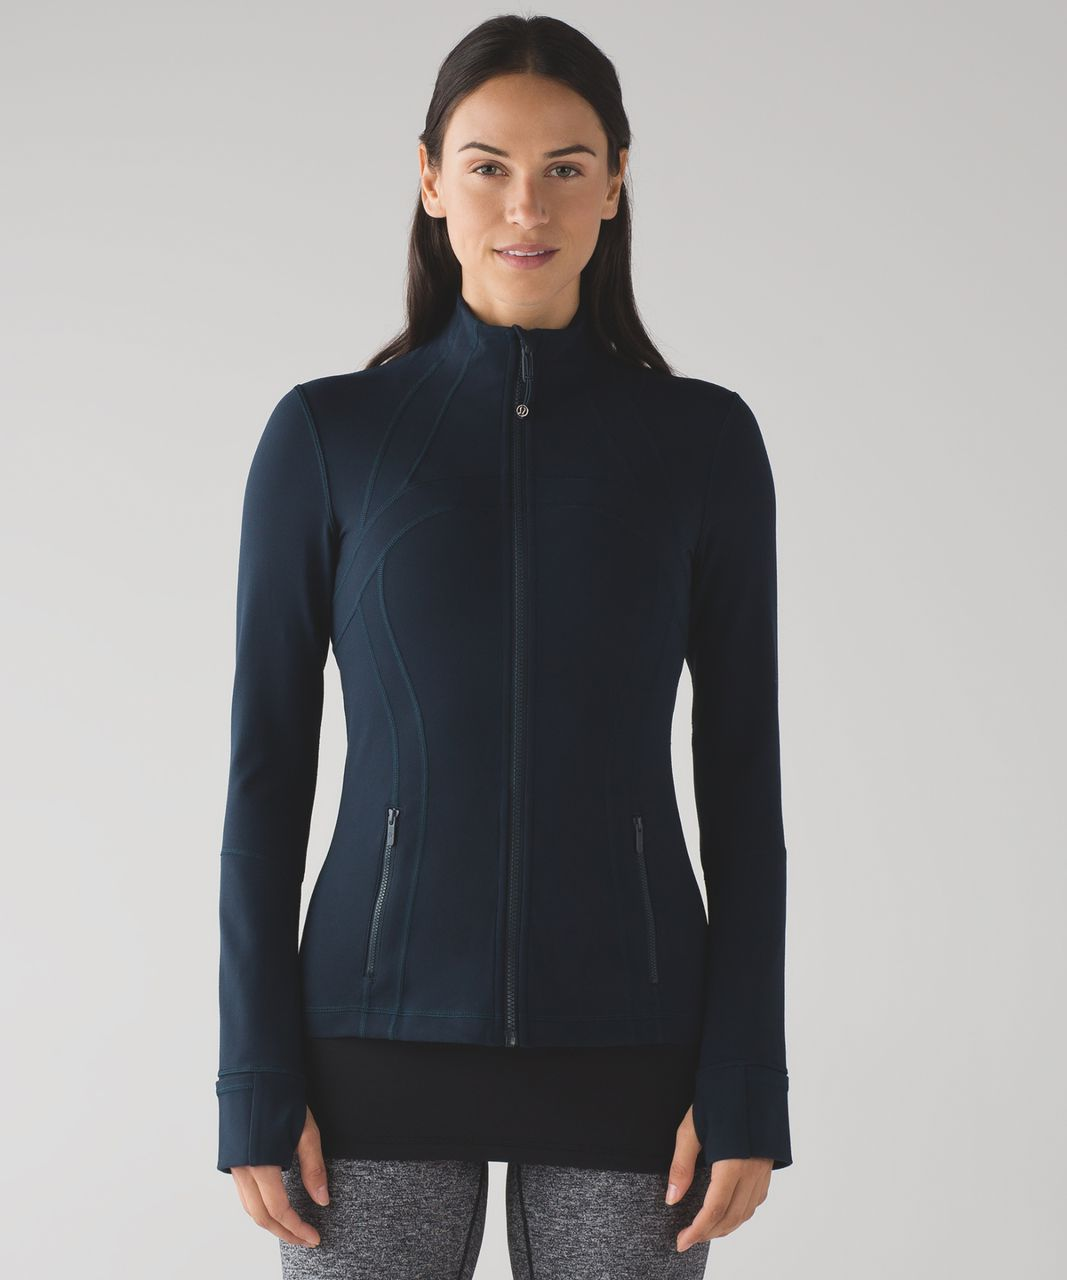 Lululemon Define Jacket - Nocturnal Teal (First Release)